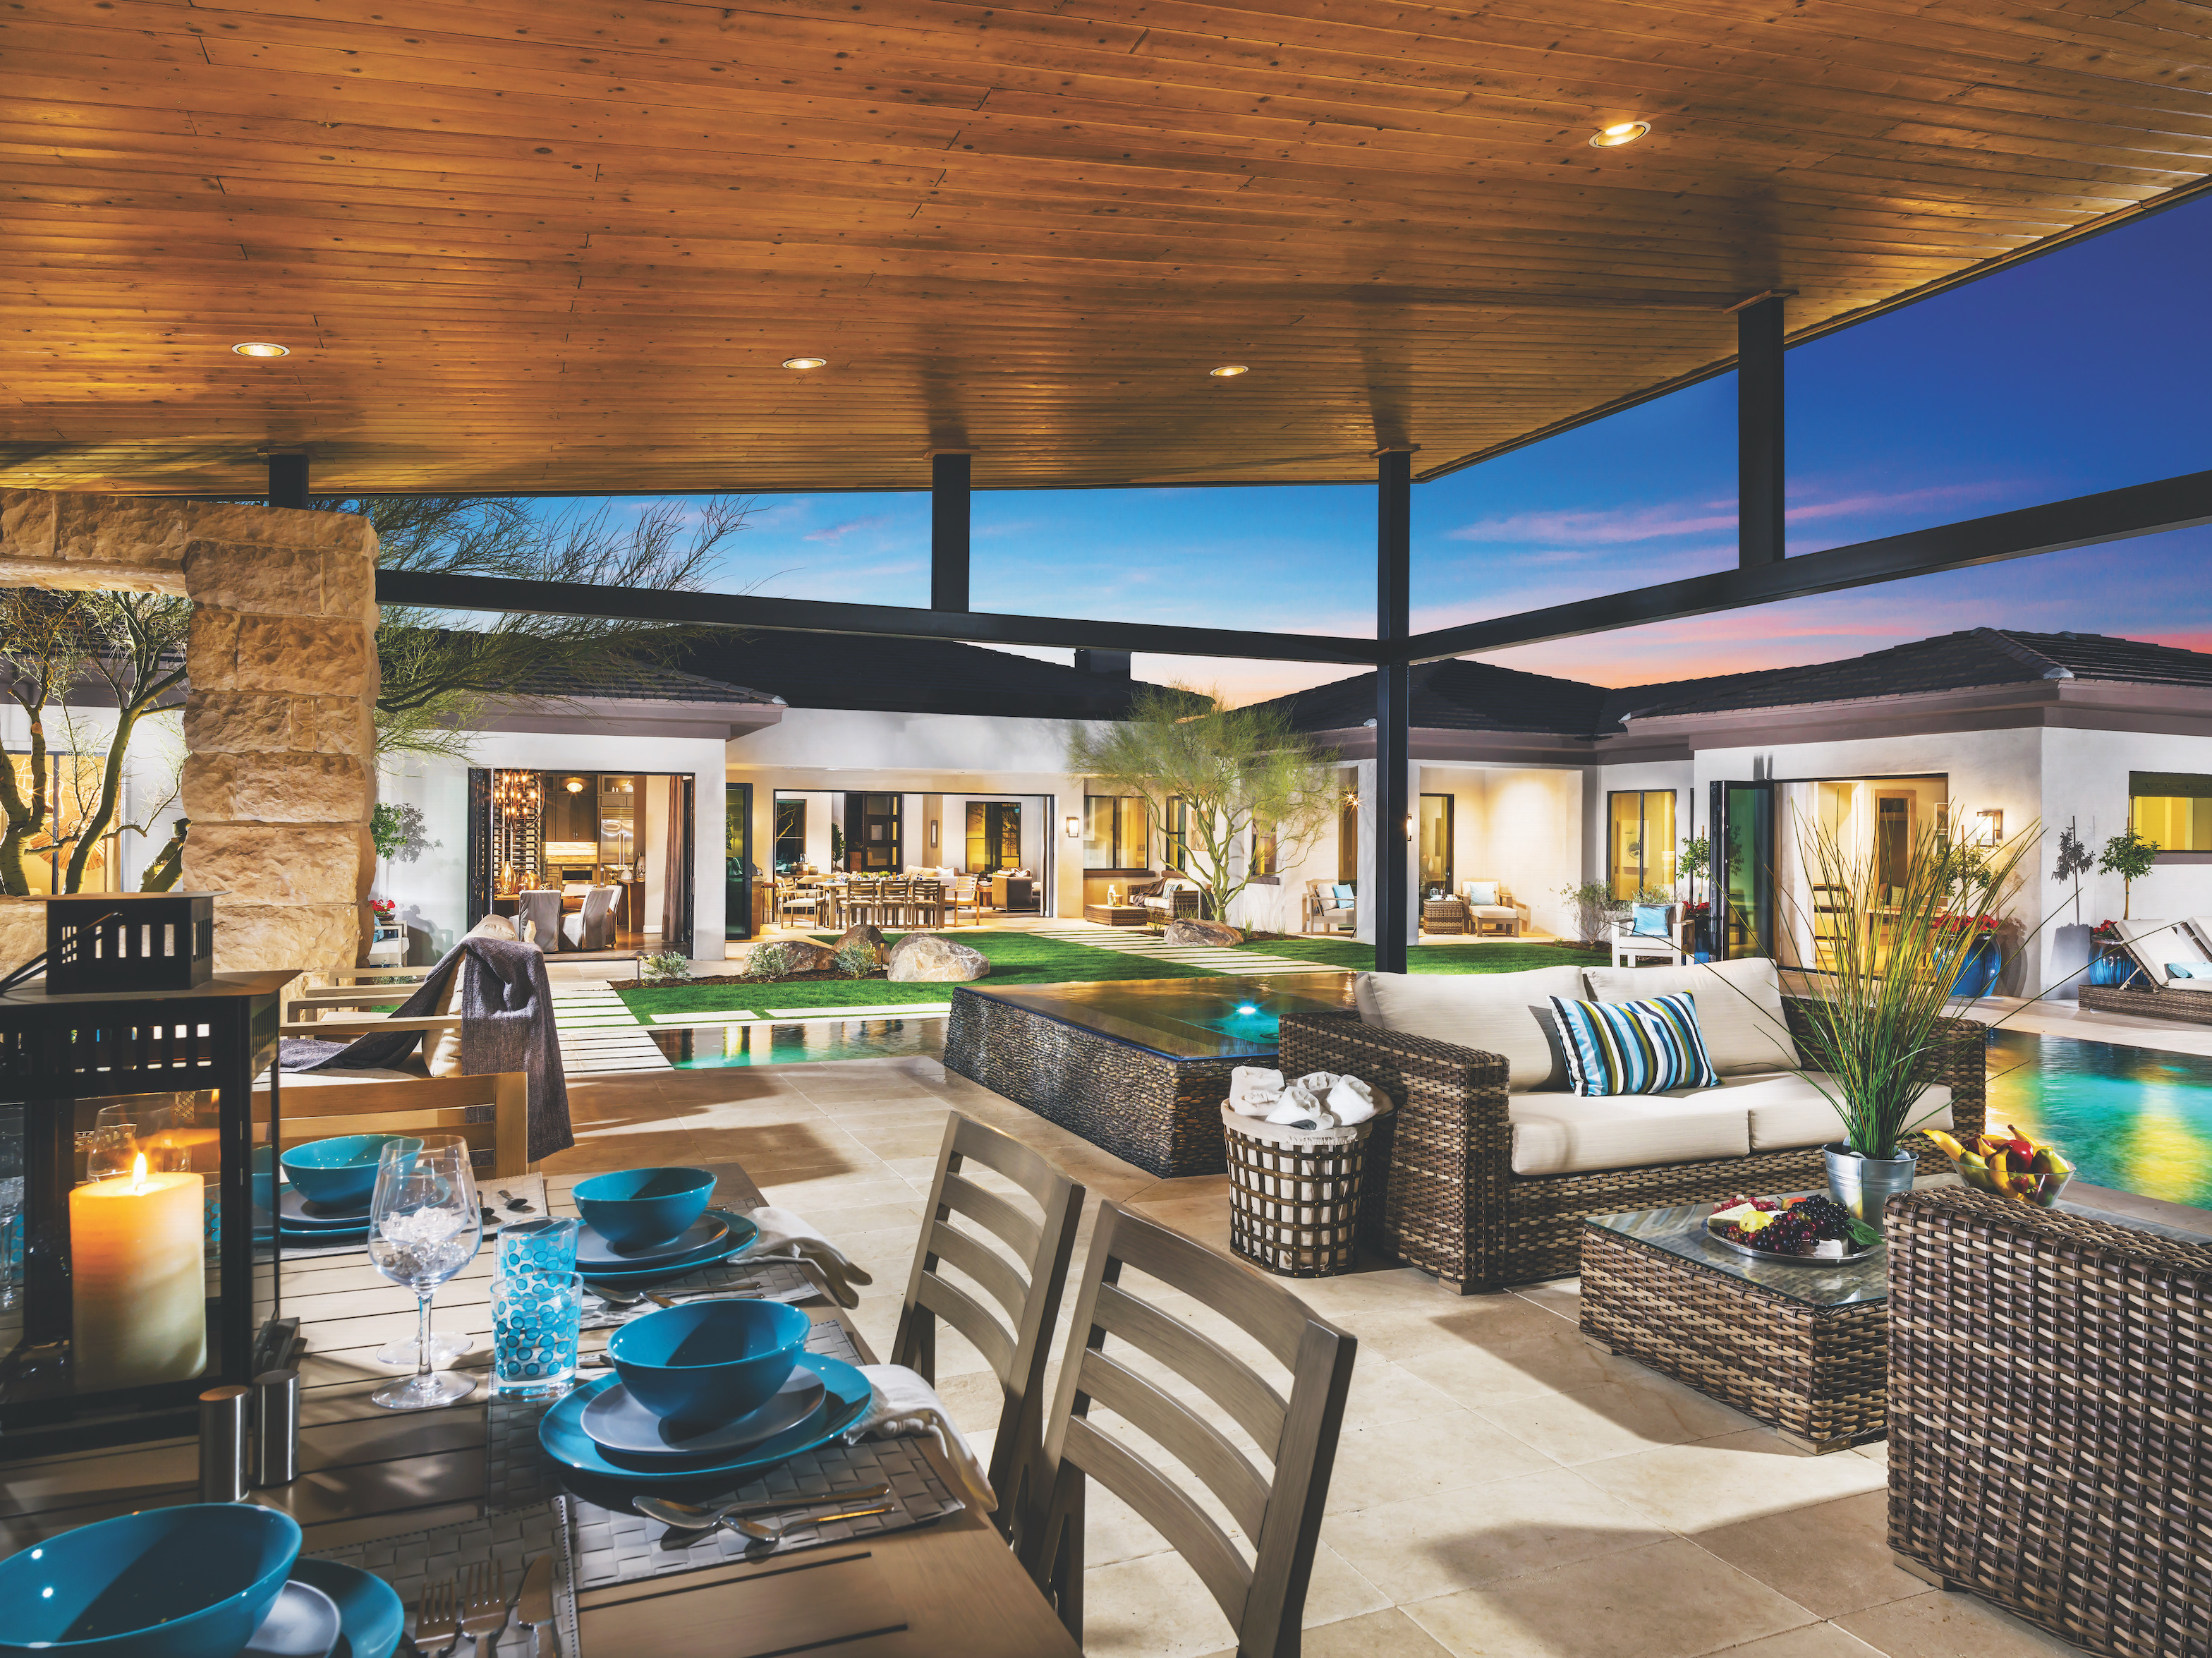 Covered outdoor seating in a backyard and outdoor lighting.